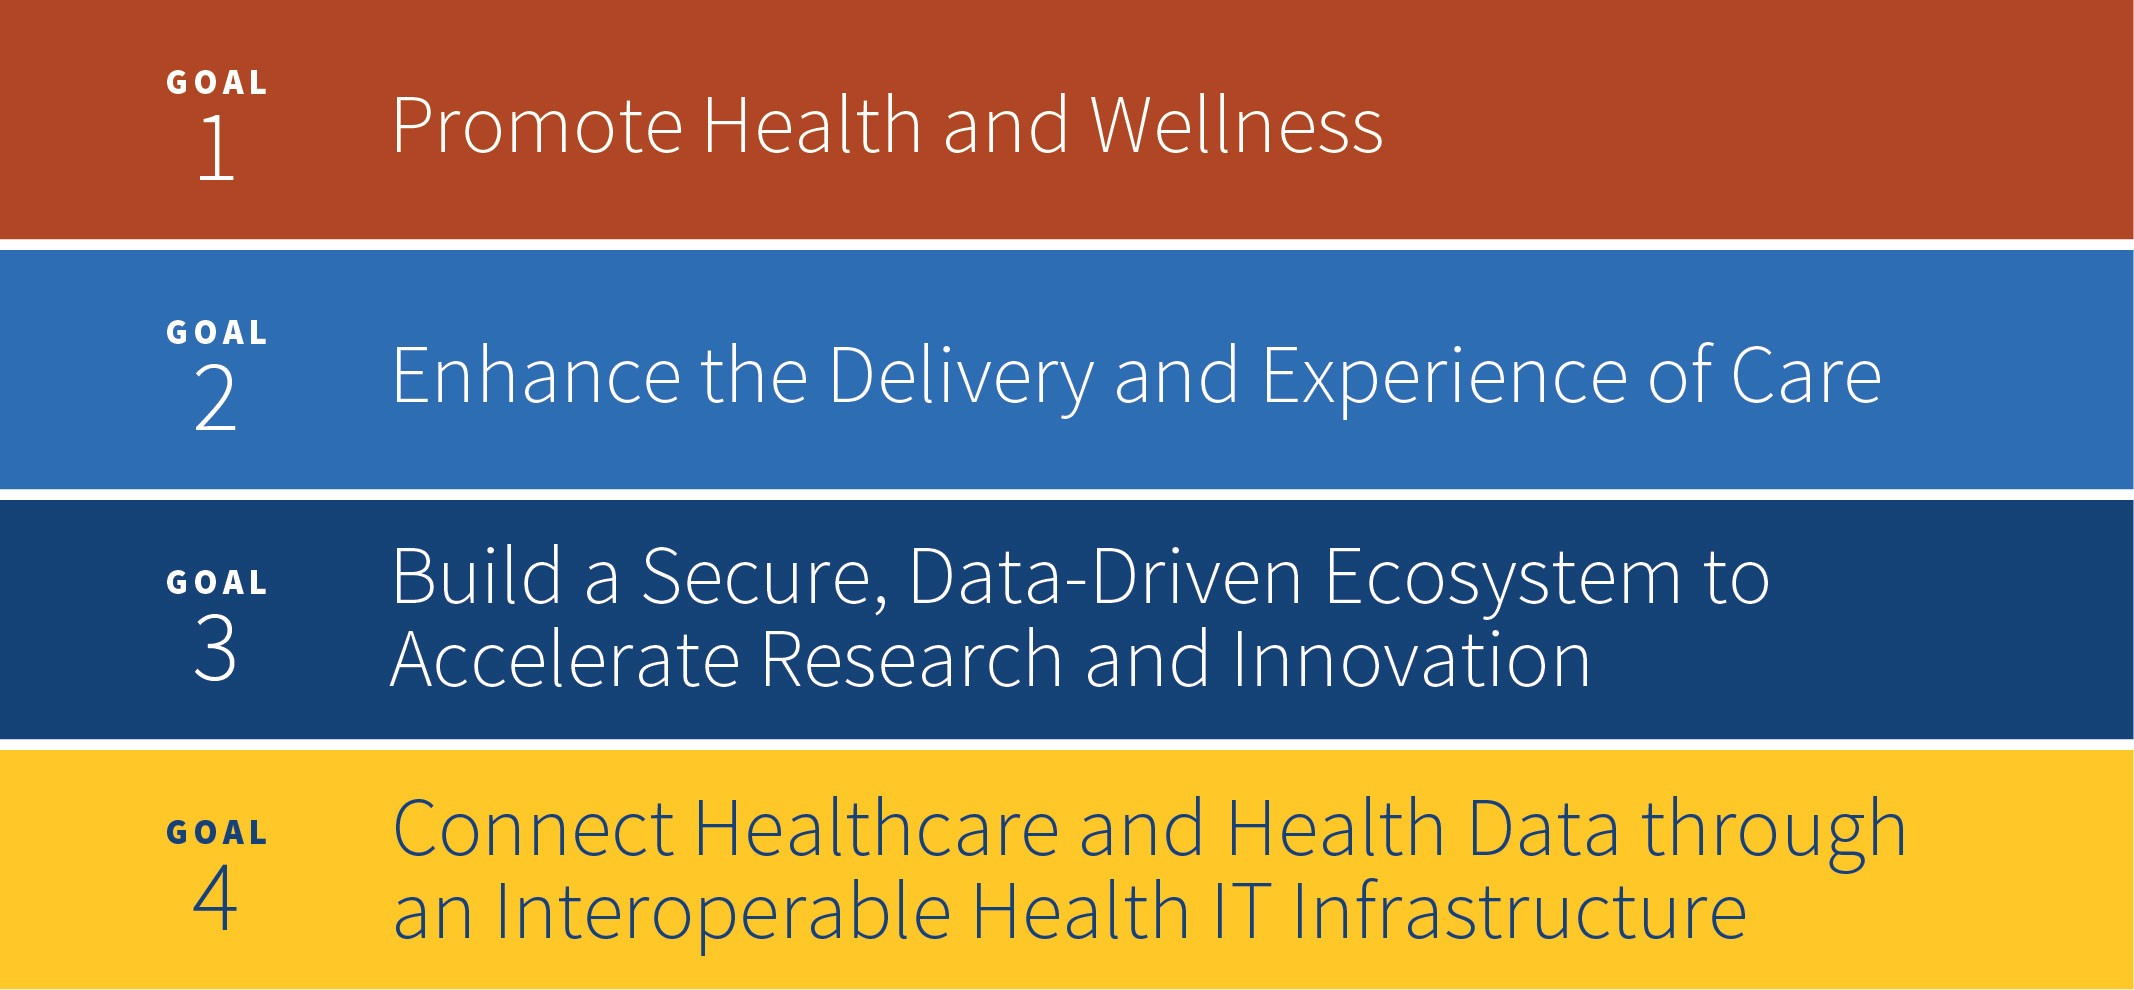 Image Describing the 5 goals of the Draft Strategic Plan. Goal 1 Promote Health and Wellness; Goal 2 Enhance the Delivery and Experience of Care; Goal 3 Build a Secure, Data-Driven Ecosystem to Accelerate Research and Innovation; Goal 4 Connect Healthcare and Health Data through an Interoperable Health IT Infrastructure